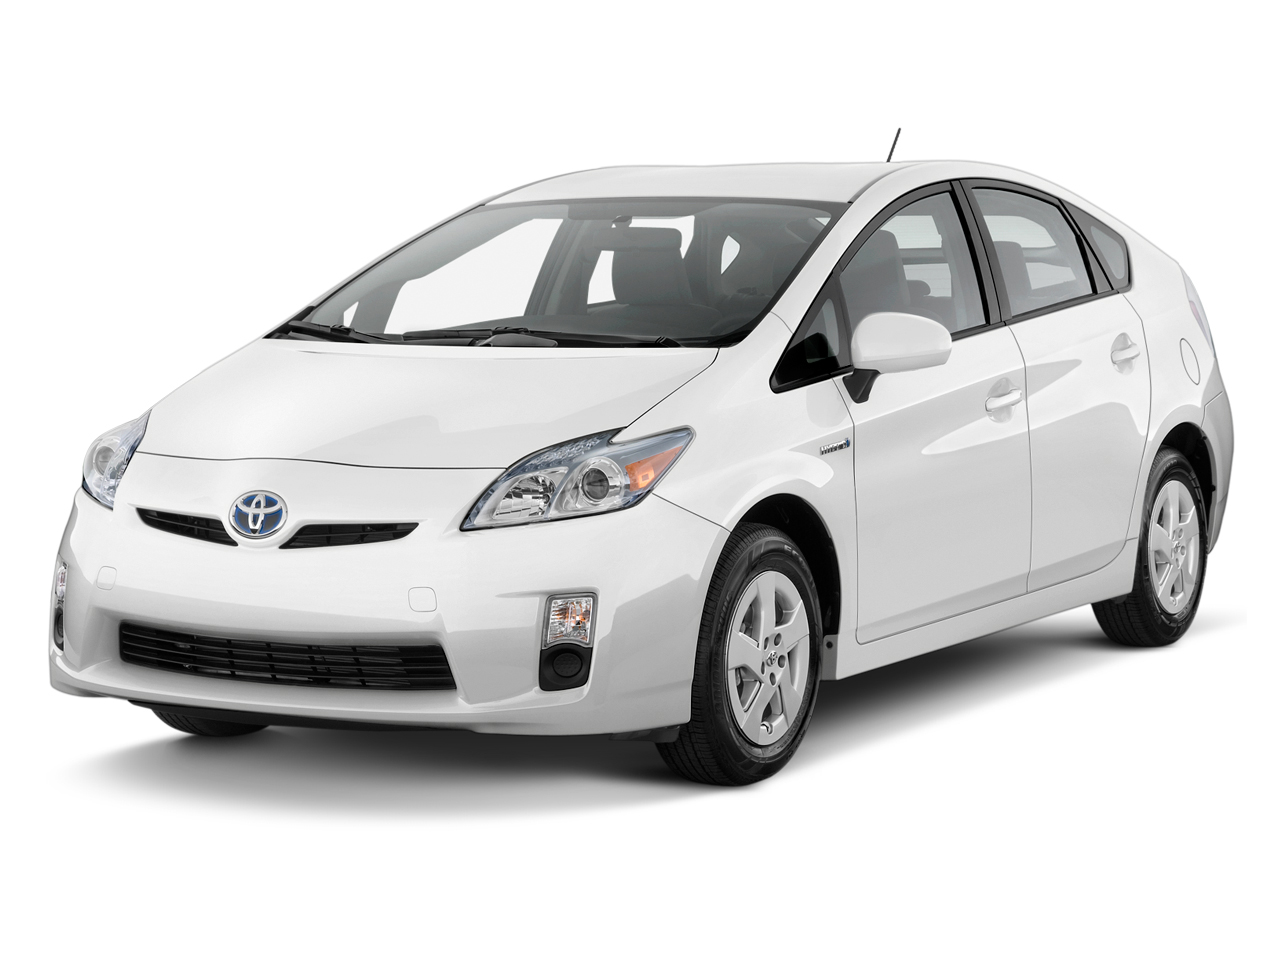 2010 Toyota Prius And 2010 Lexus Hs 250h Recalled To Fix Abs